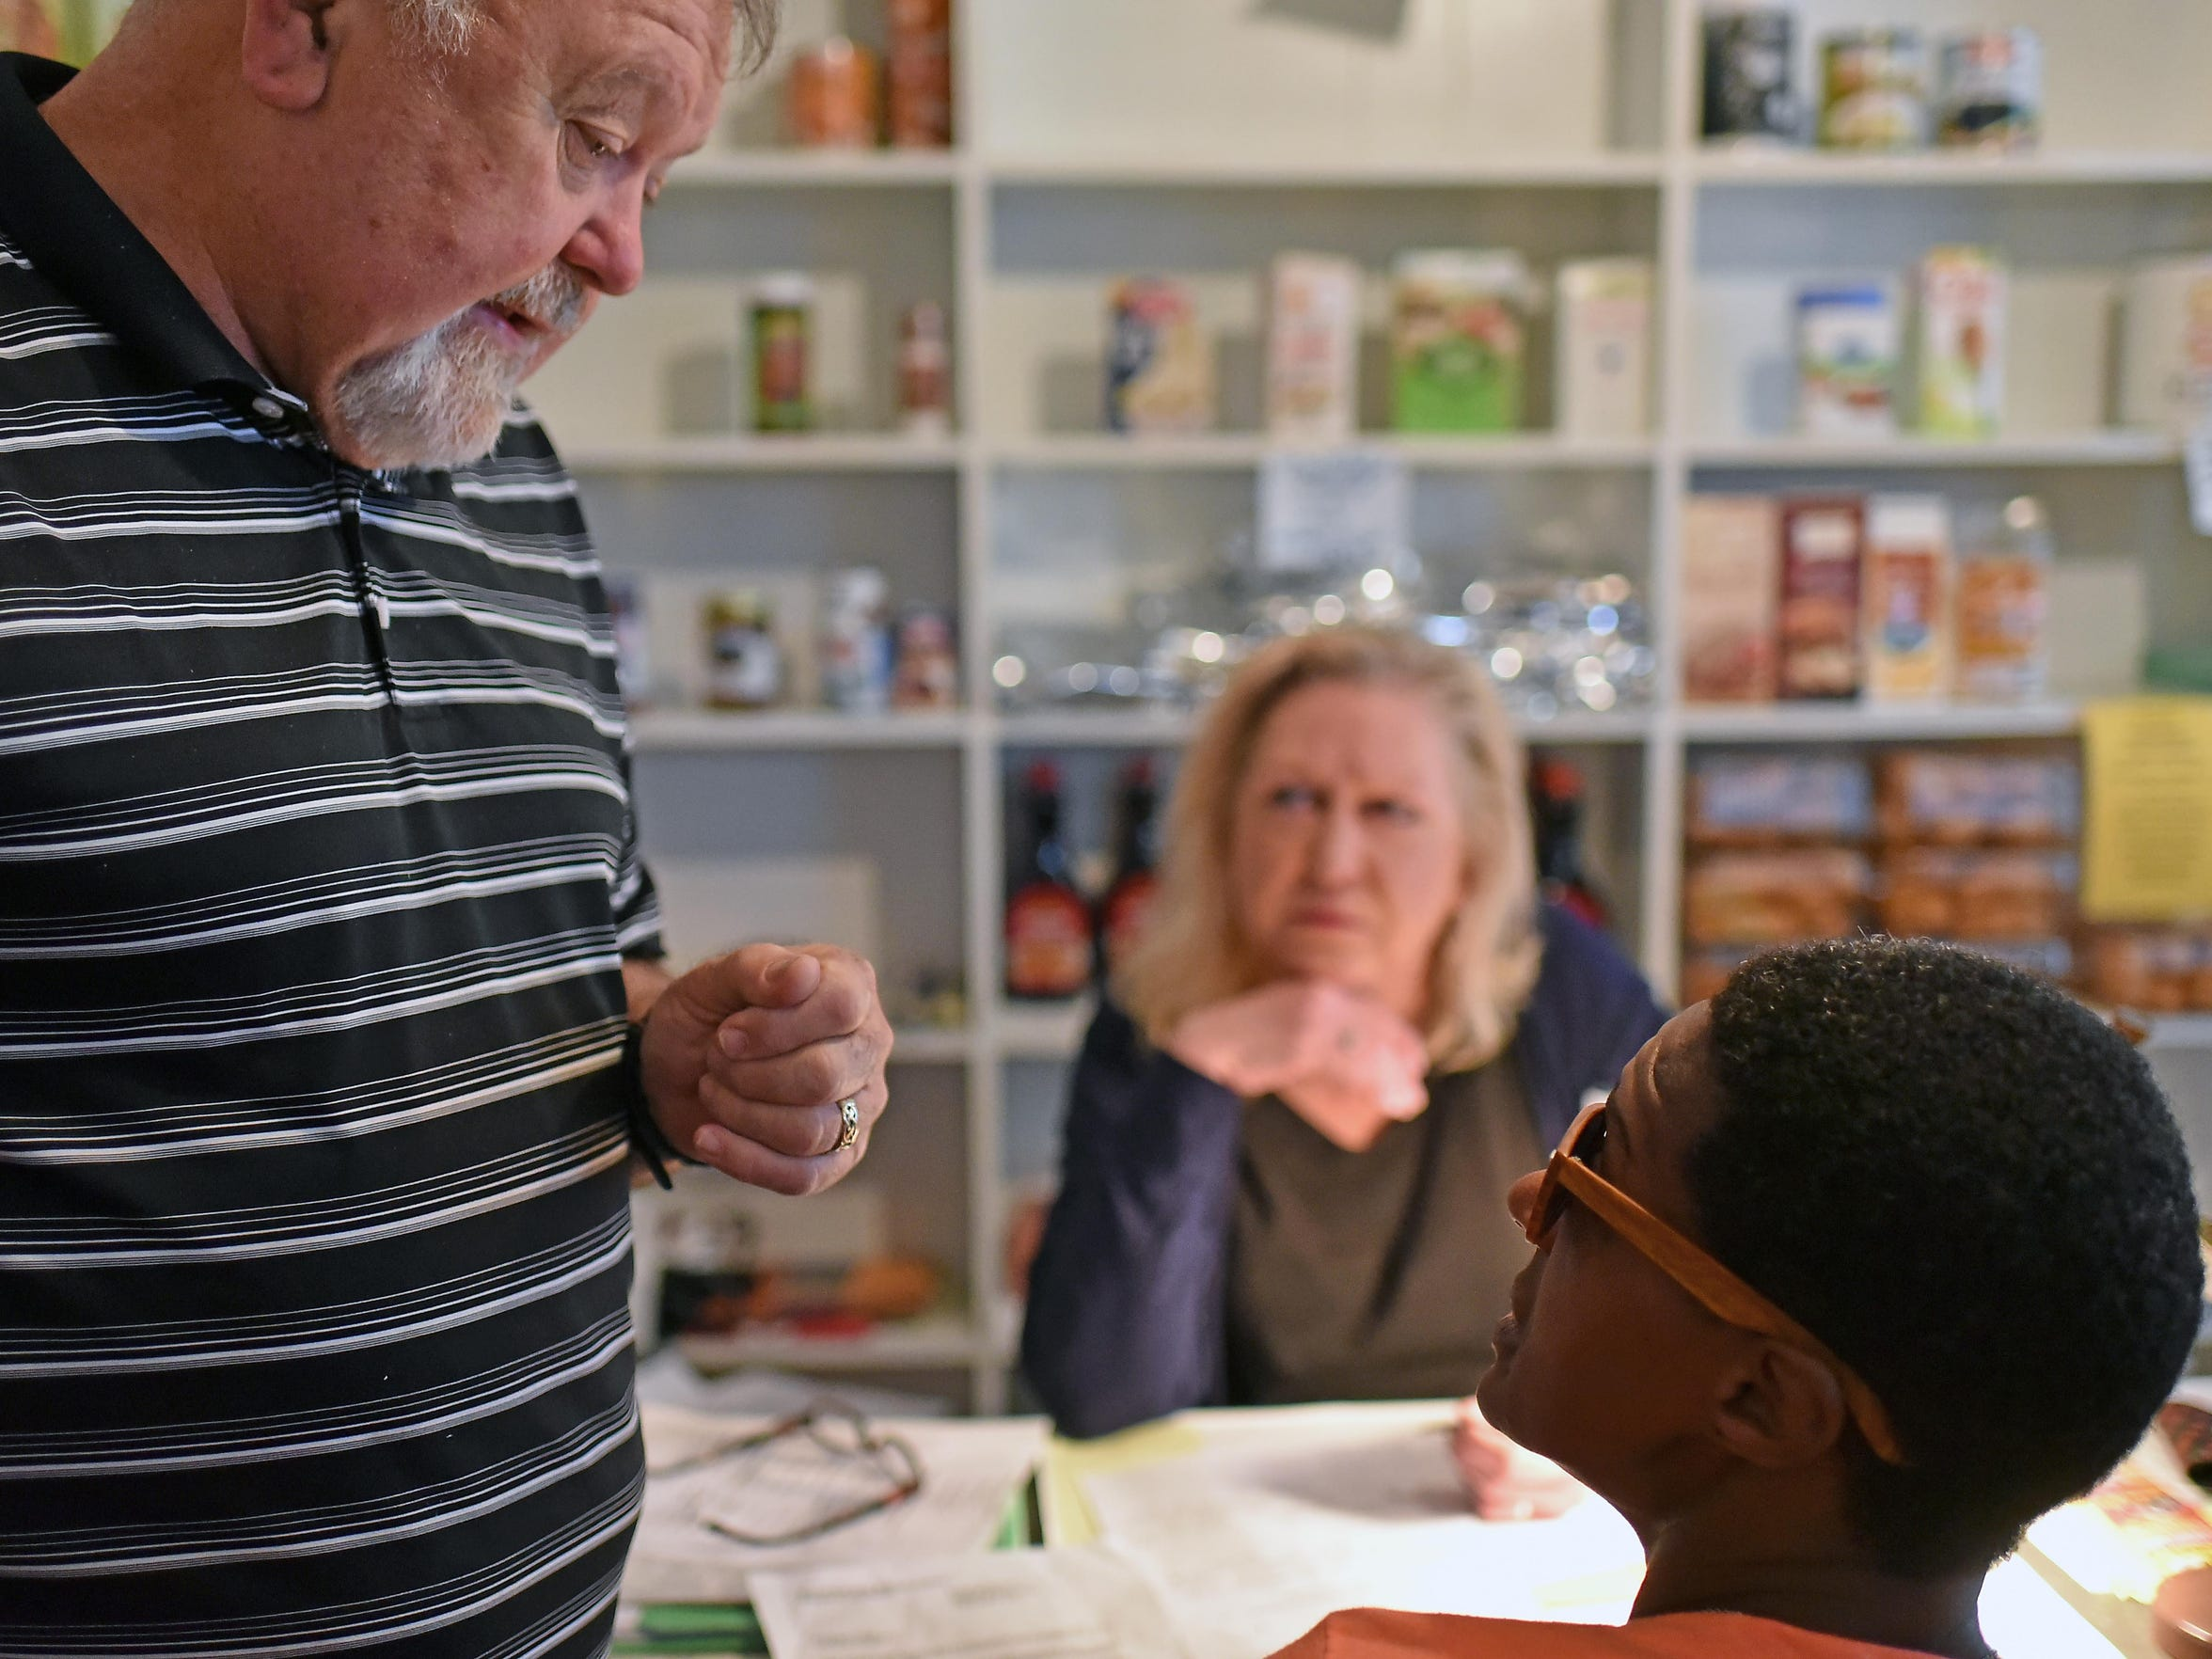 Chuck Brett, executive director of Help & Hope Ministries in Millville, talks with Parmella Wise as she registers to receive food.